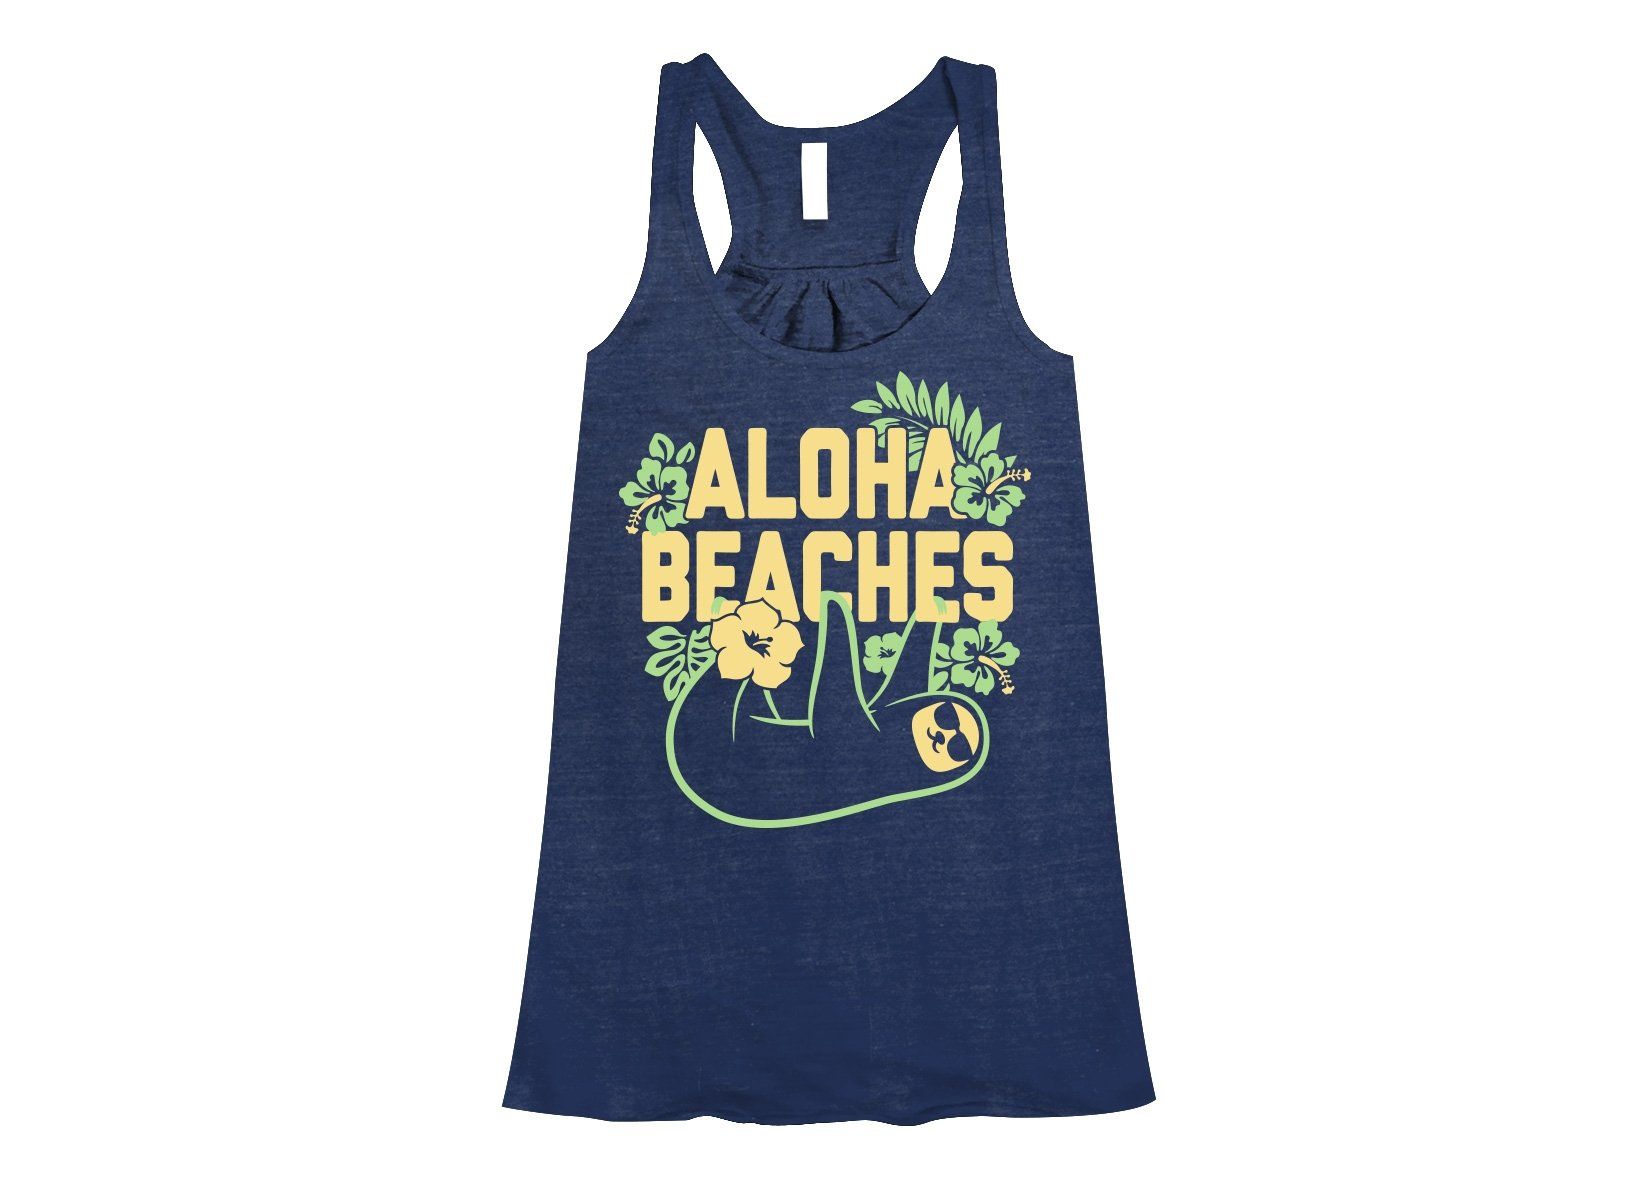 Aloha Beaches on Womens Tanks T-Shirt